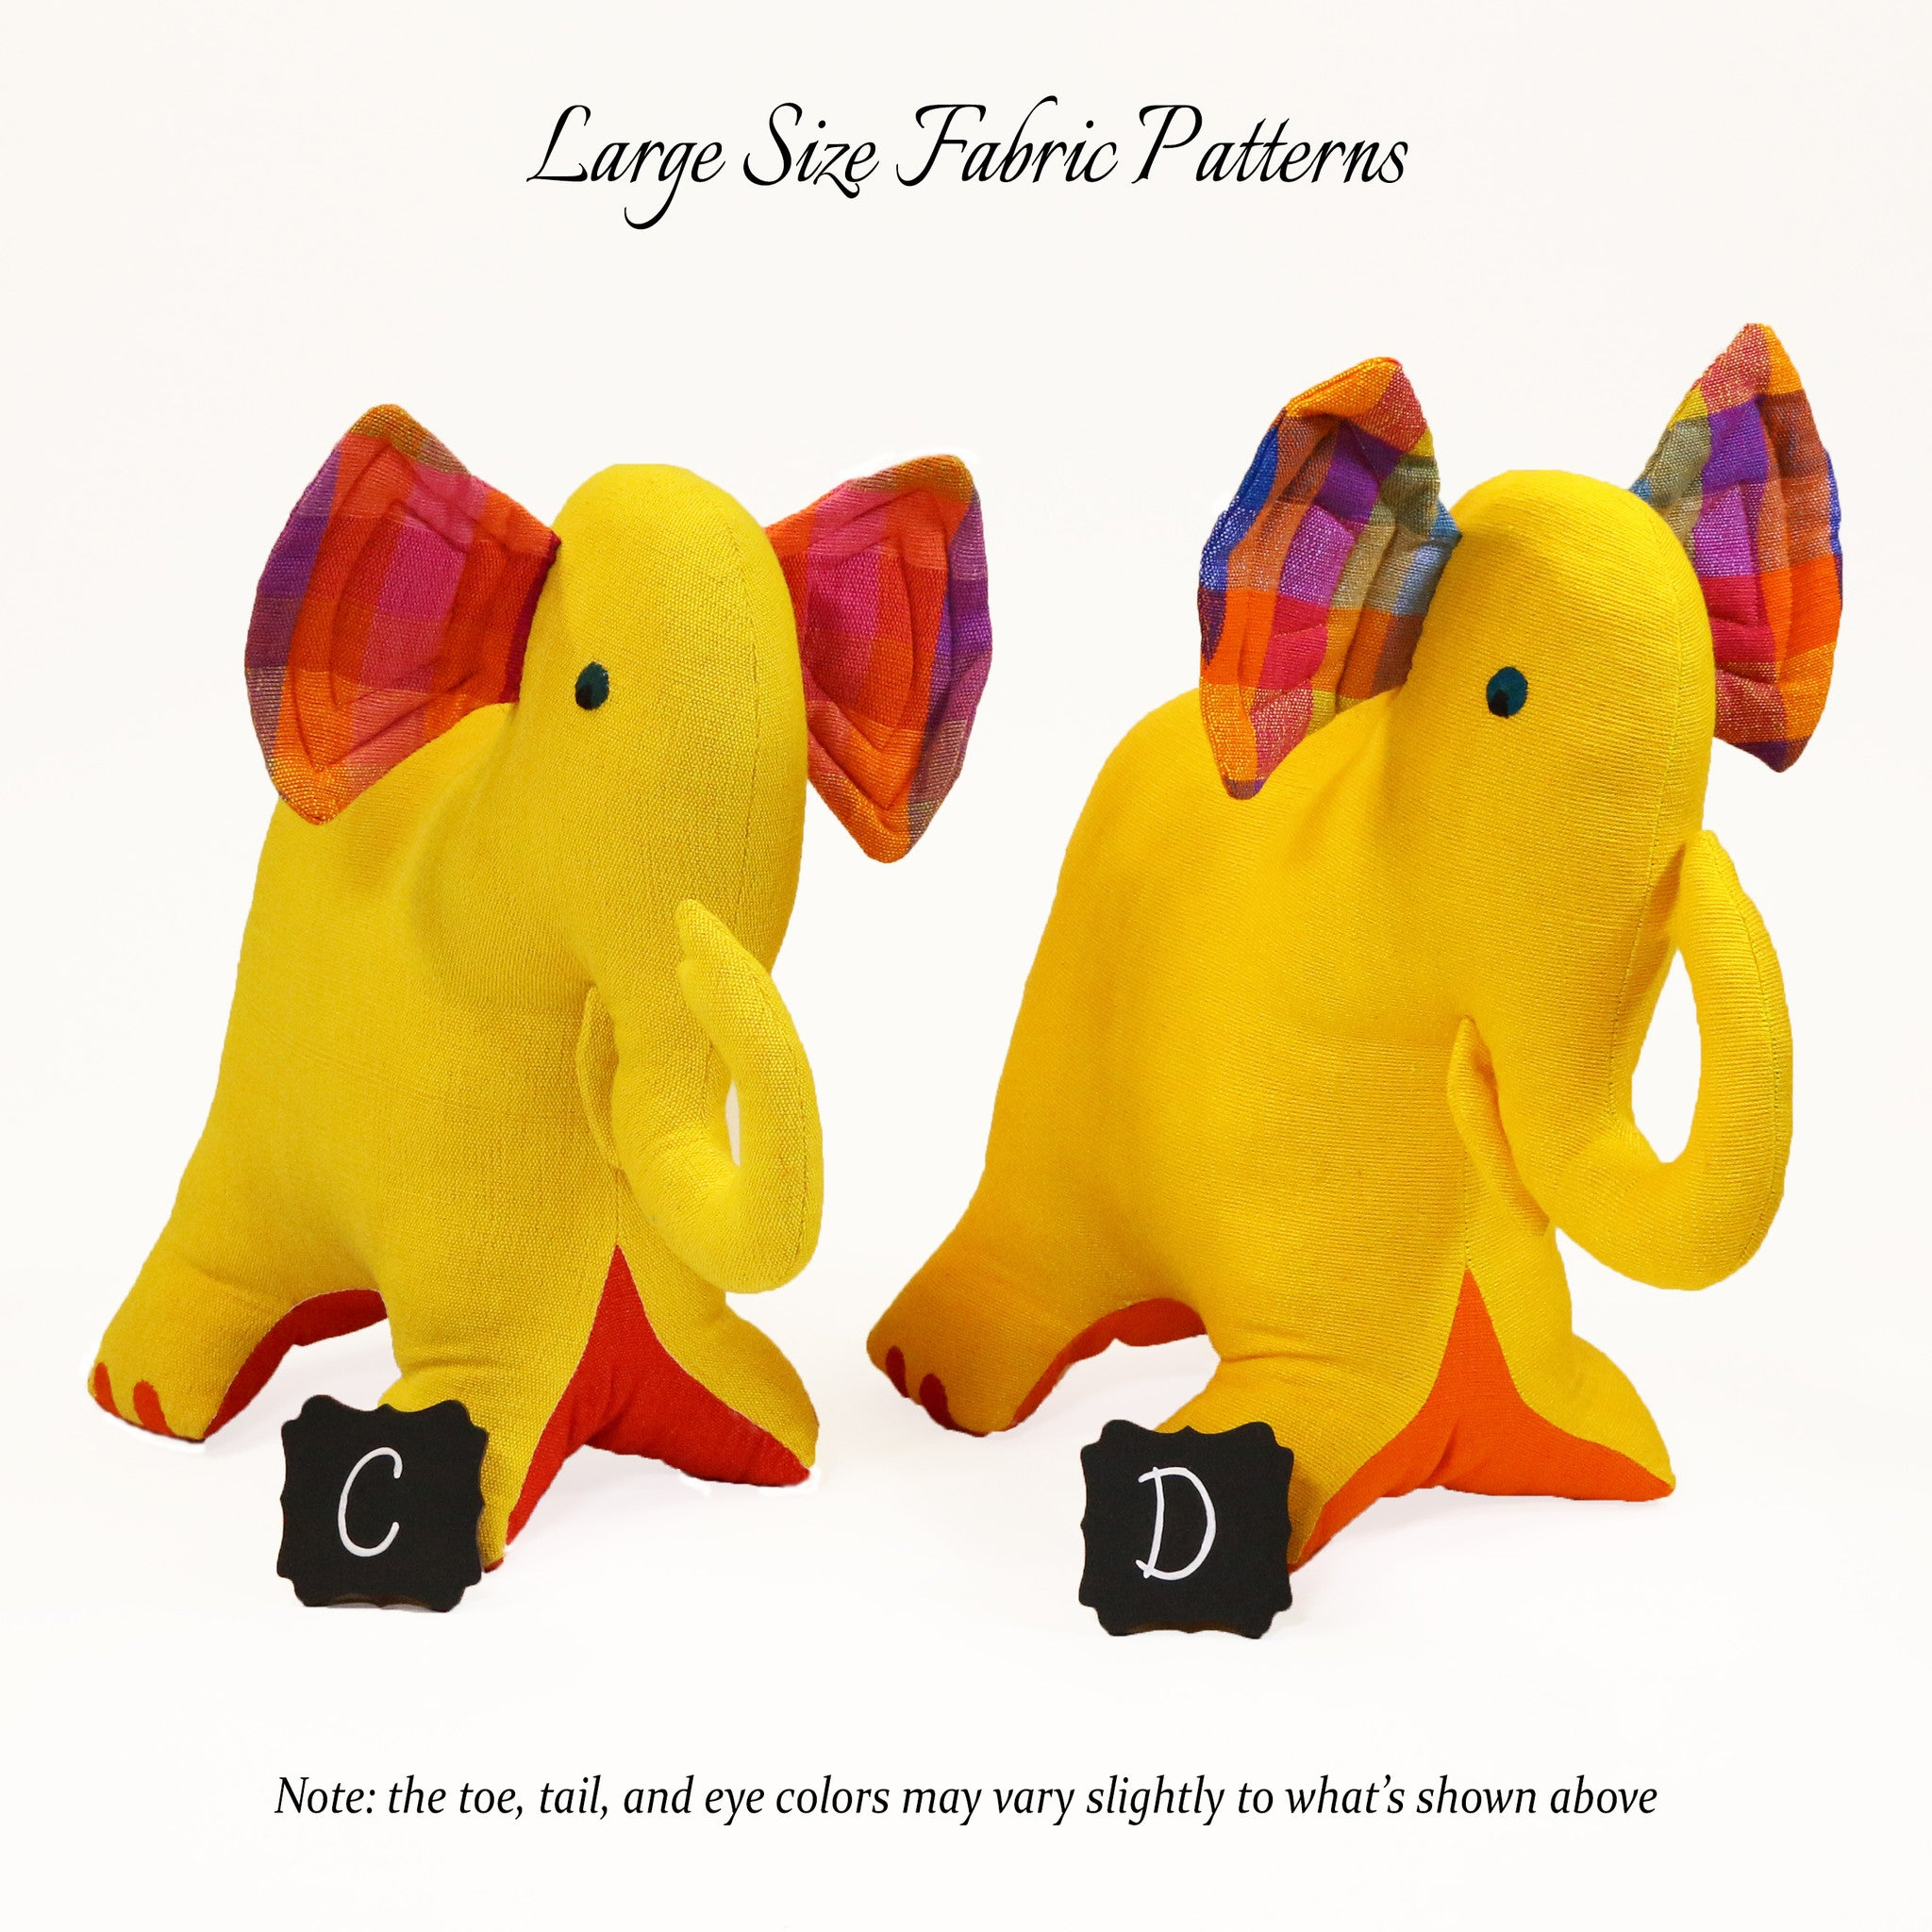 Ellen, the Elephant – large size fabric patterns shown